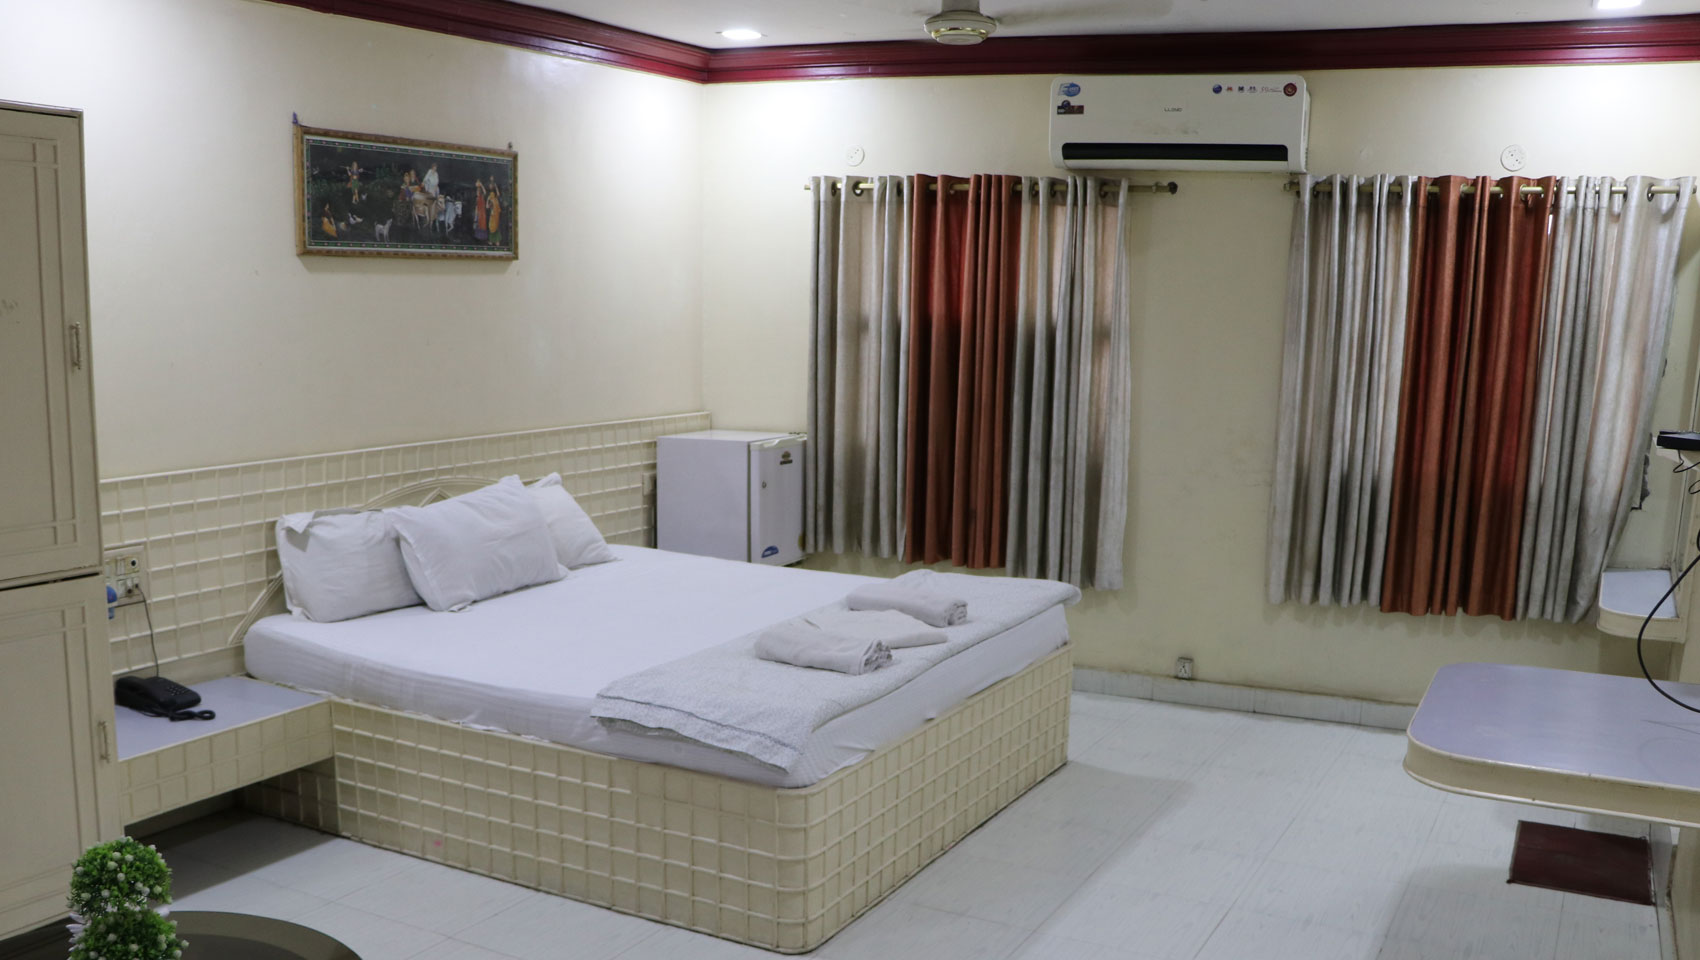 Best Hotel Room in Korba Chhattisgarh